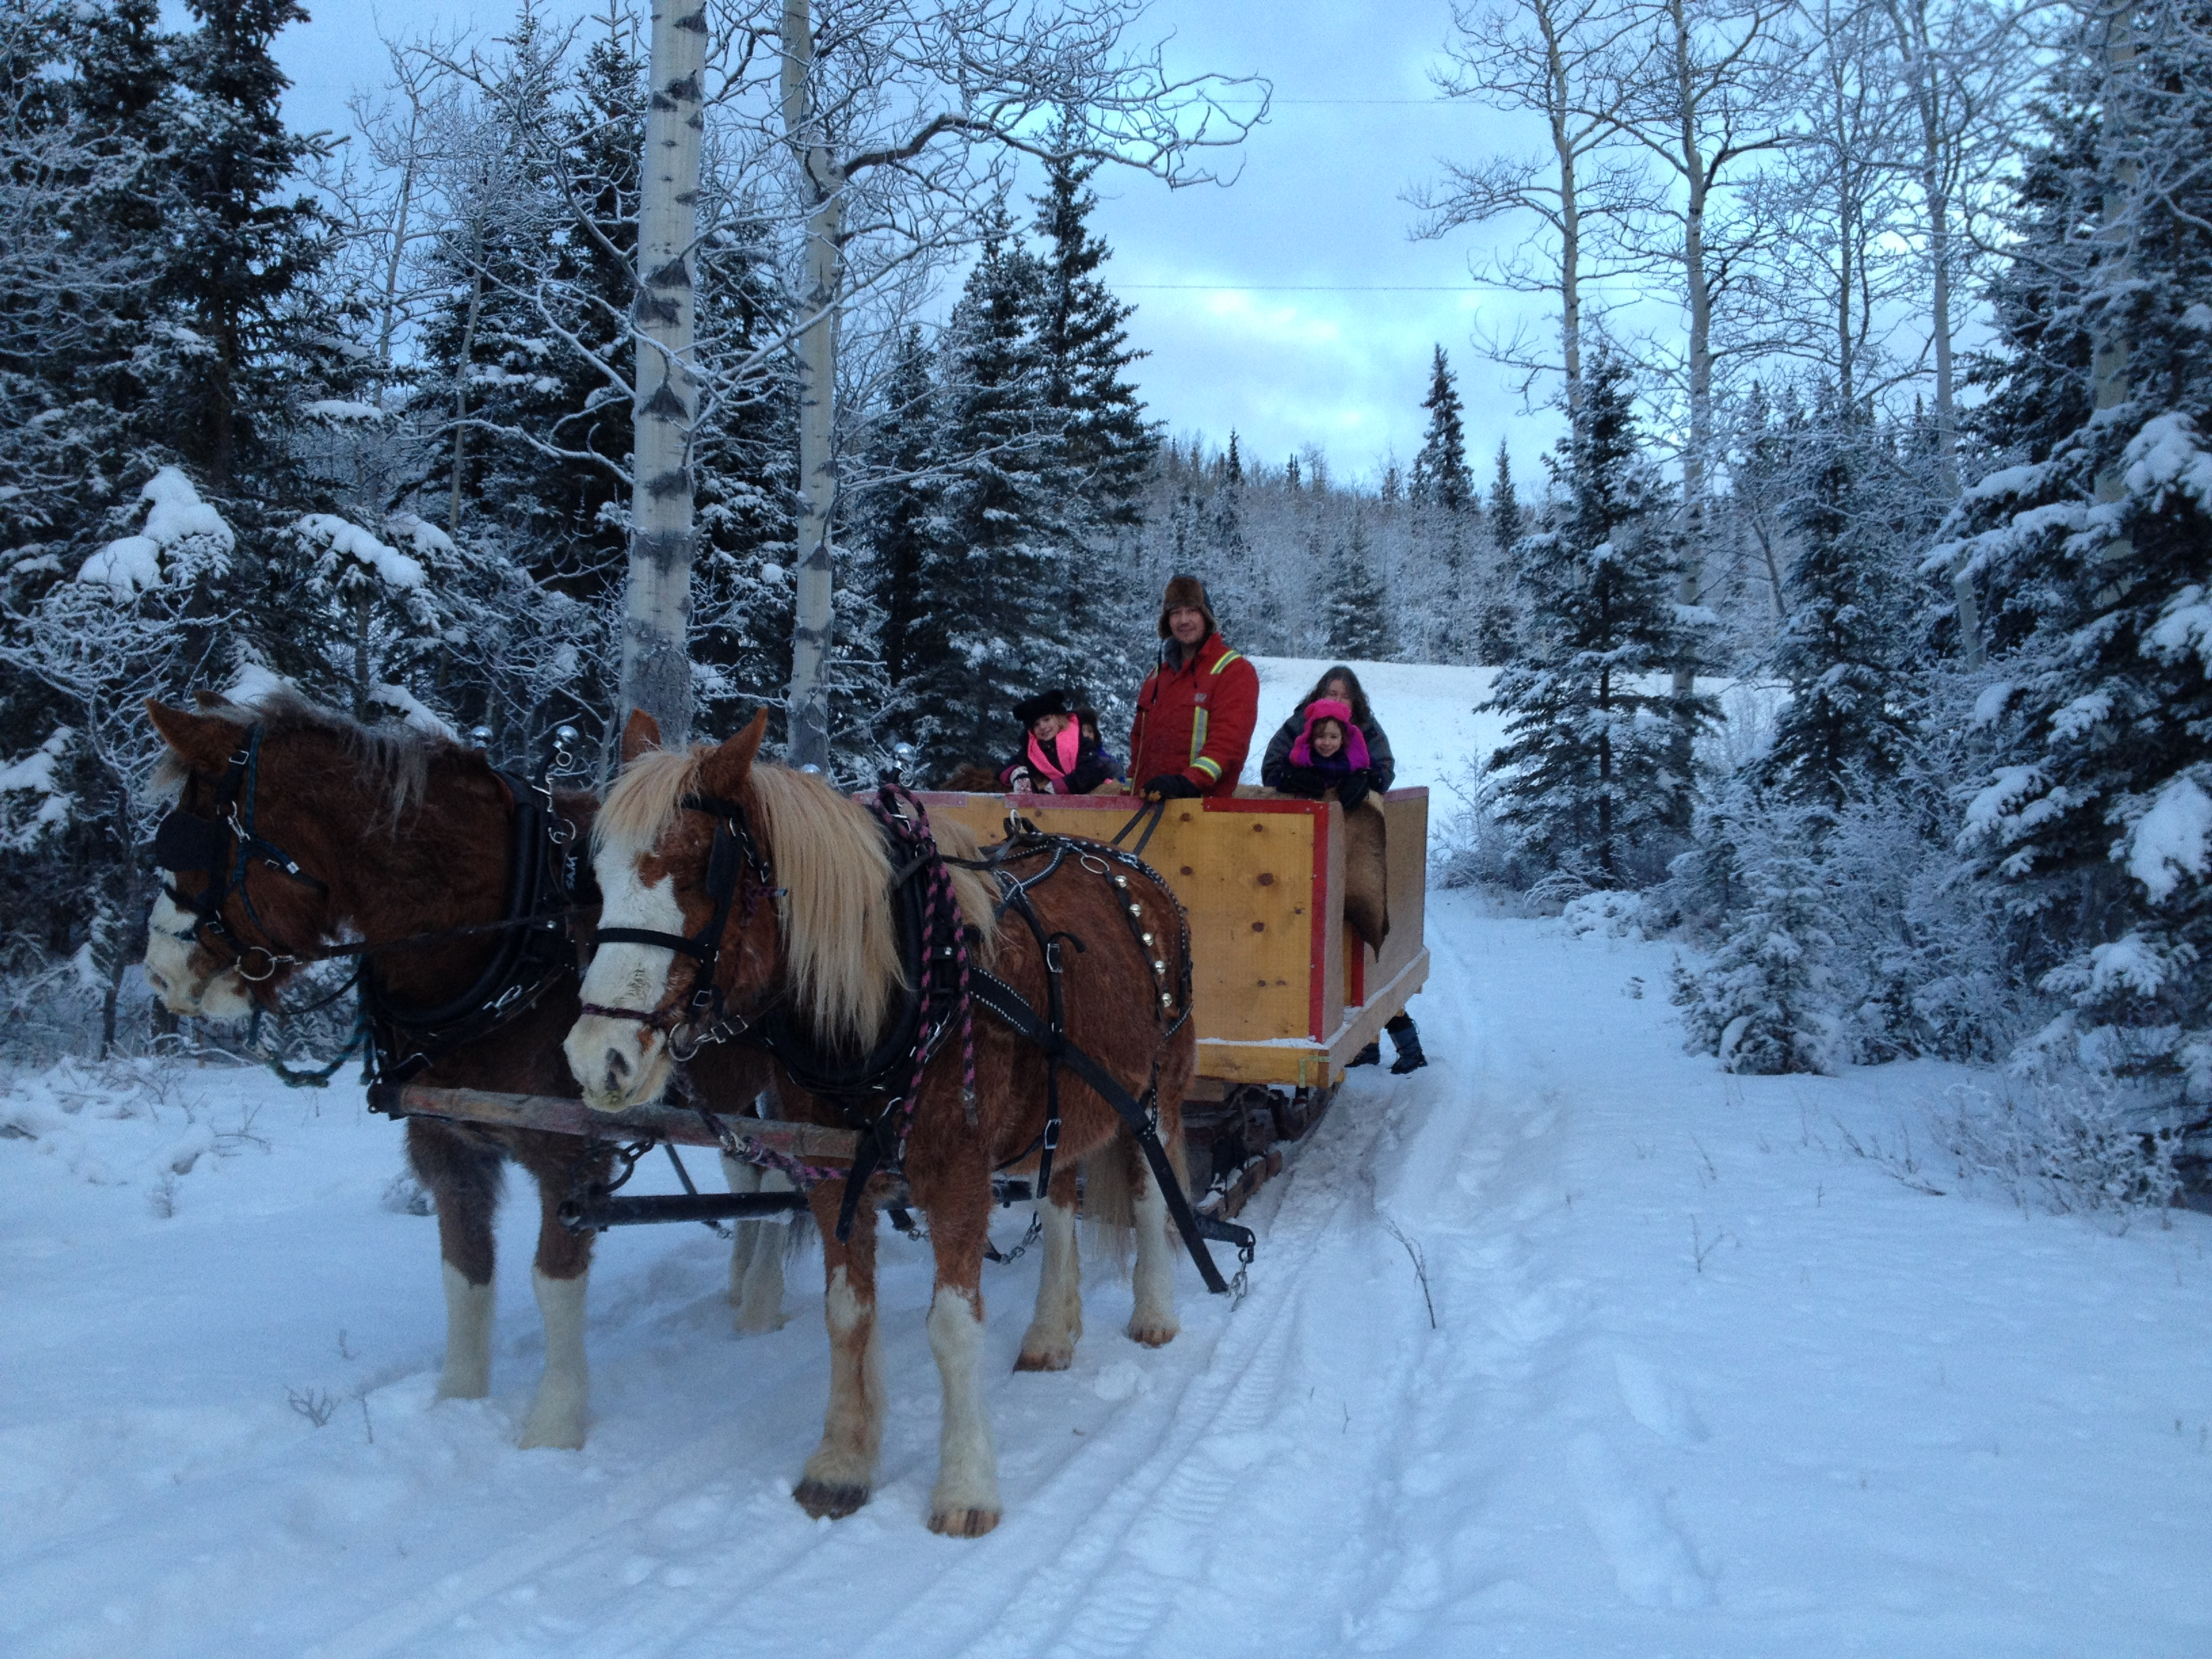 Experience a Winter Horse Drawn Sleigh Ride with family or friends!